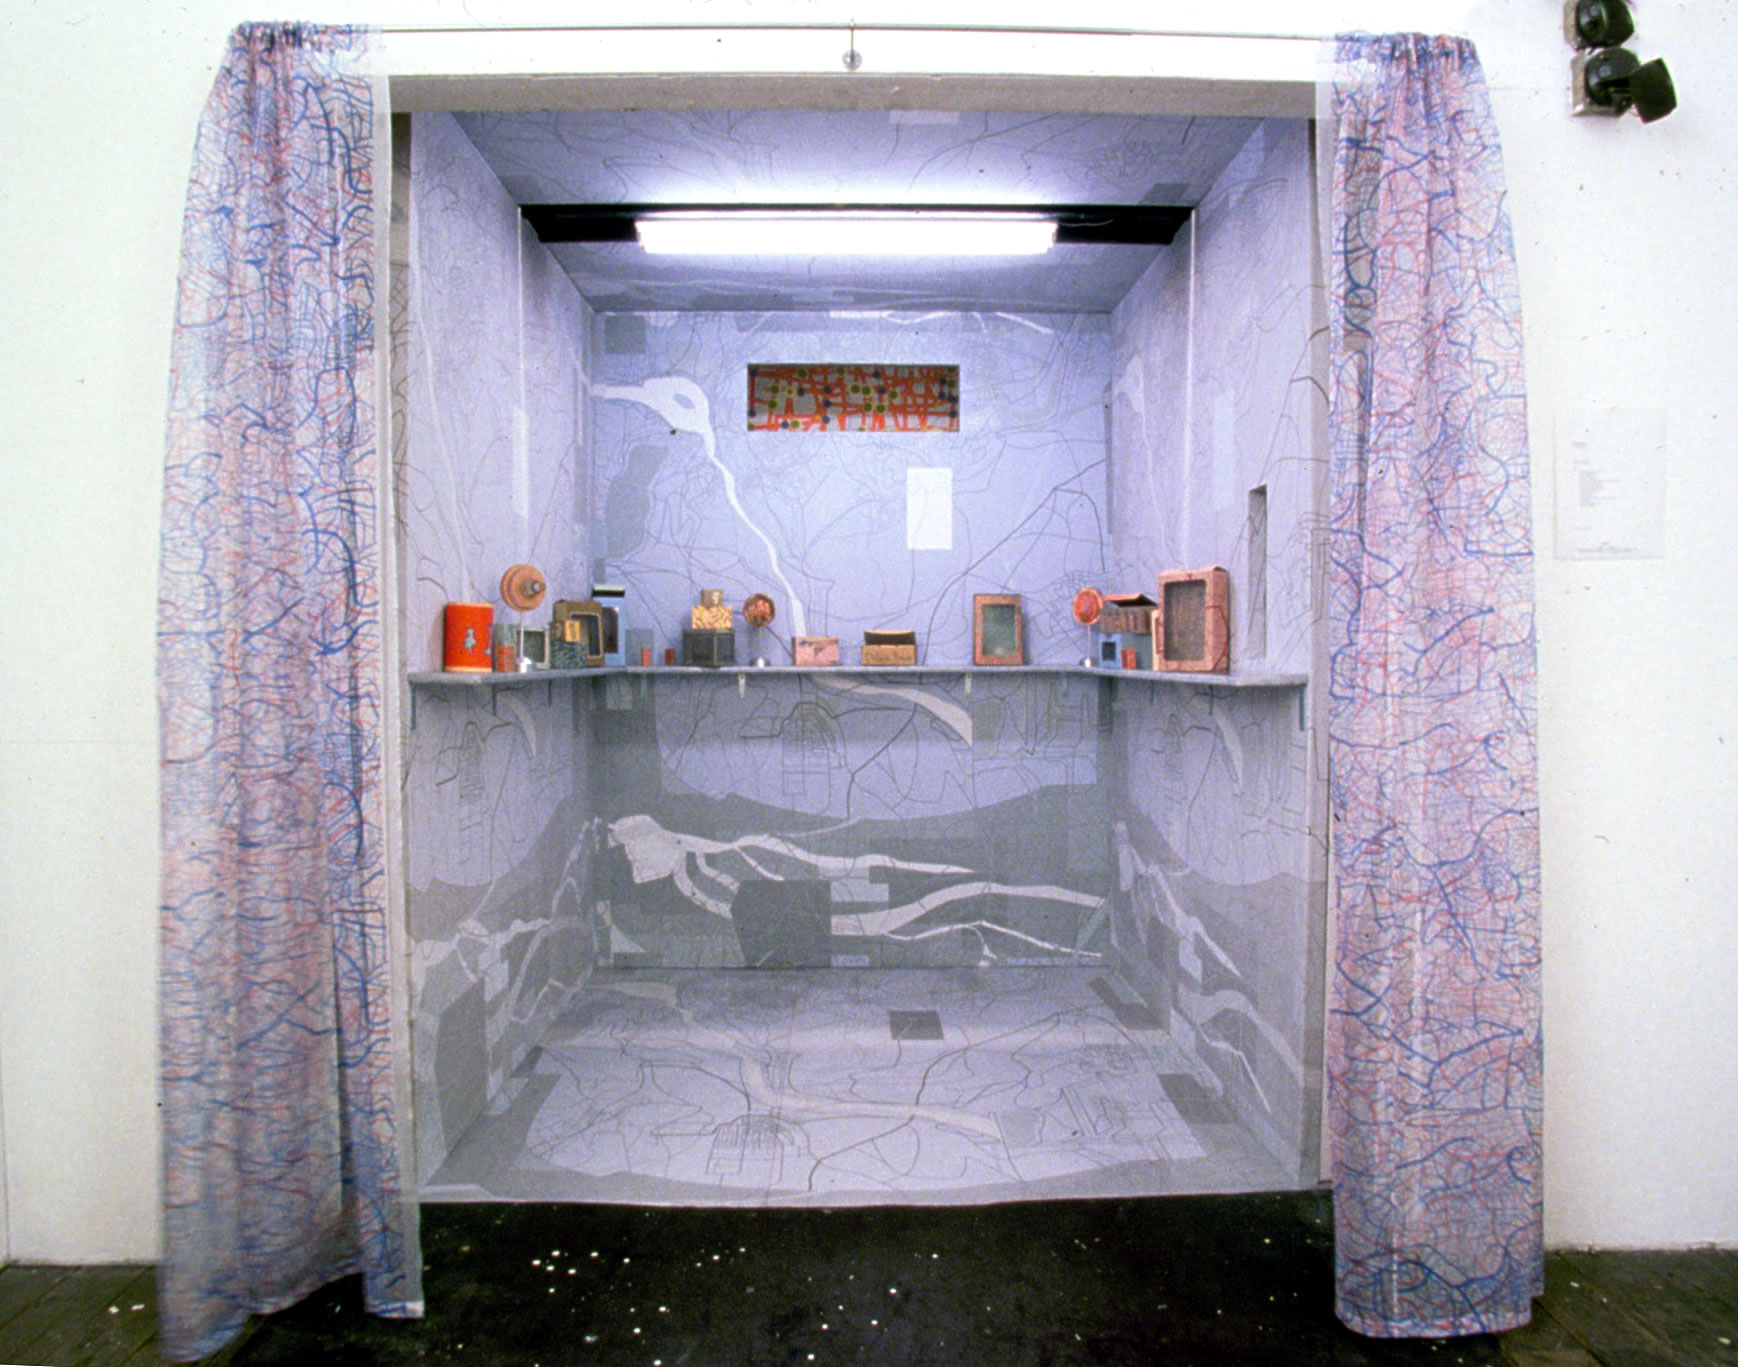 "2 Standard Stops. 1998  Working elevator, between two floors. Digital printing on paper mounted to plywood box built into elevator. Shelf laminated with digital prints, fictional product boxes (digitally printed, hand made) and, ""navigation"" objects"" (machined aluminum + digital print on laser cut plexi). Screen printed silk curtains, fluorescent light."